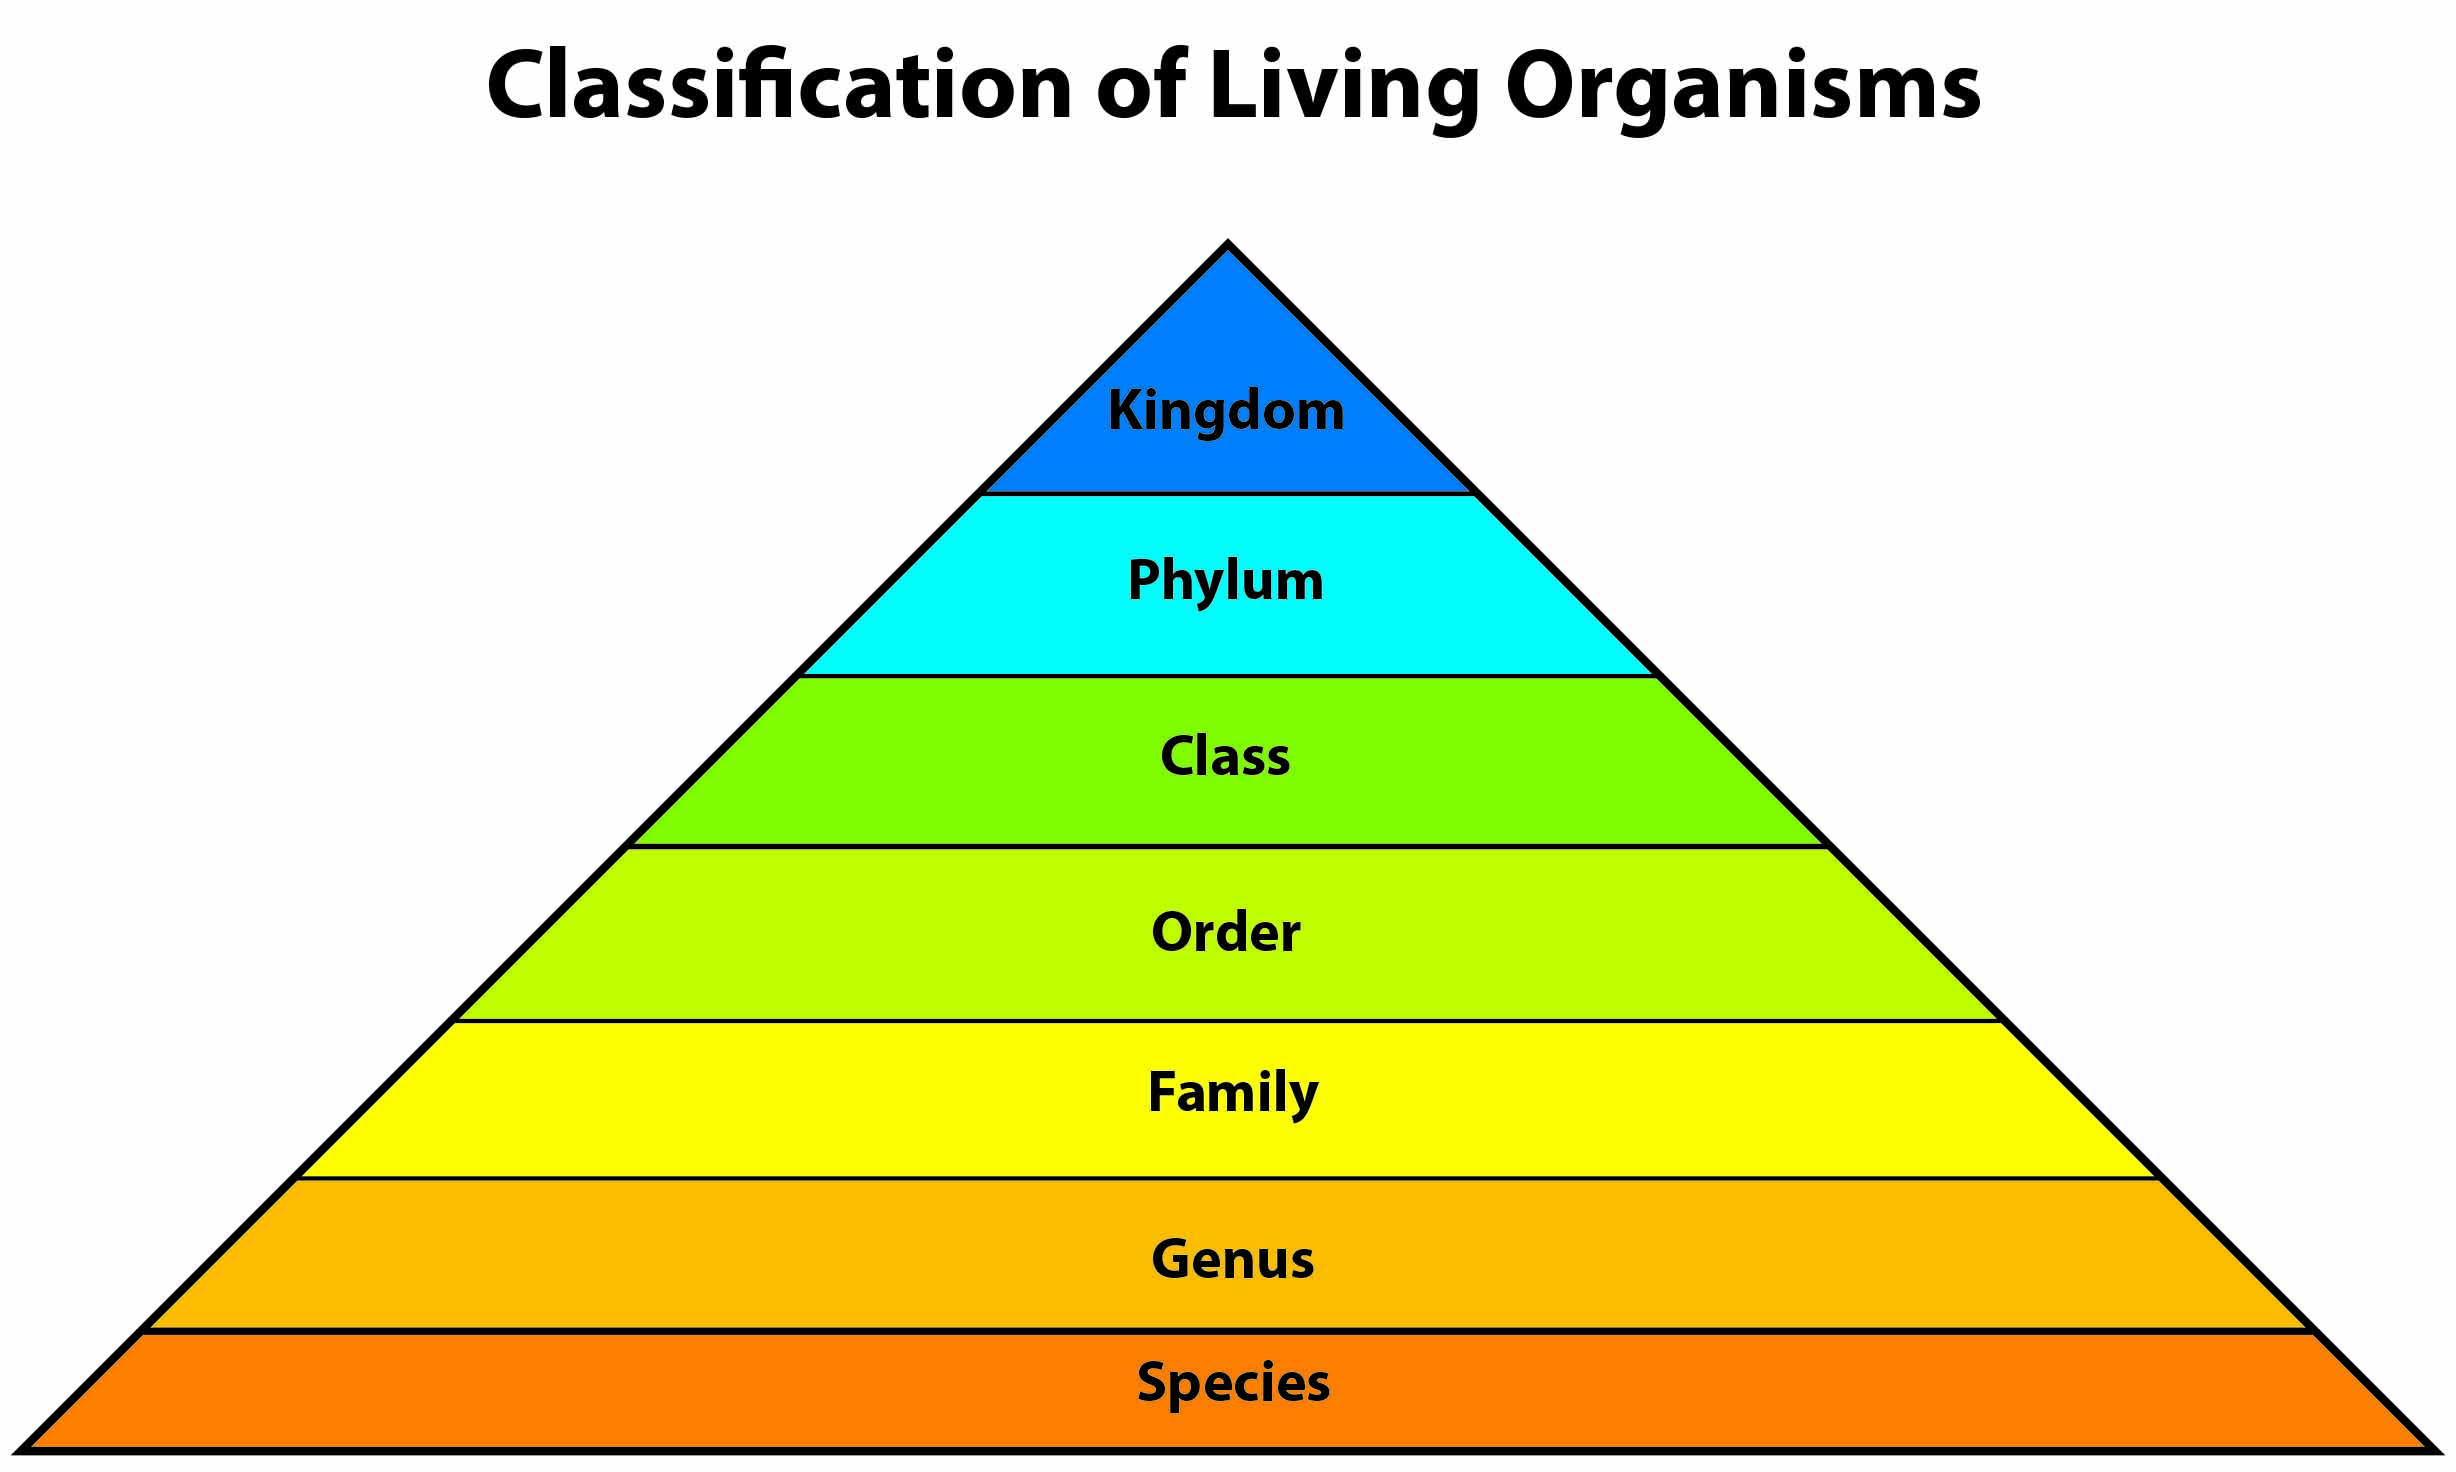 classification of organisms From the order, the organism will be classified into a family within the order of primates, families include hominidae (great apes and humans), cercopithecidae ( old world monkeys such as baboons) and hylobatidae (gibbons and lesser apes).